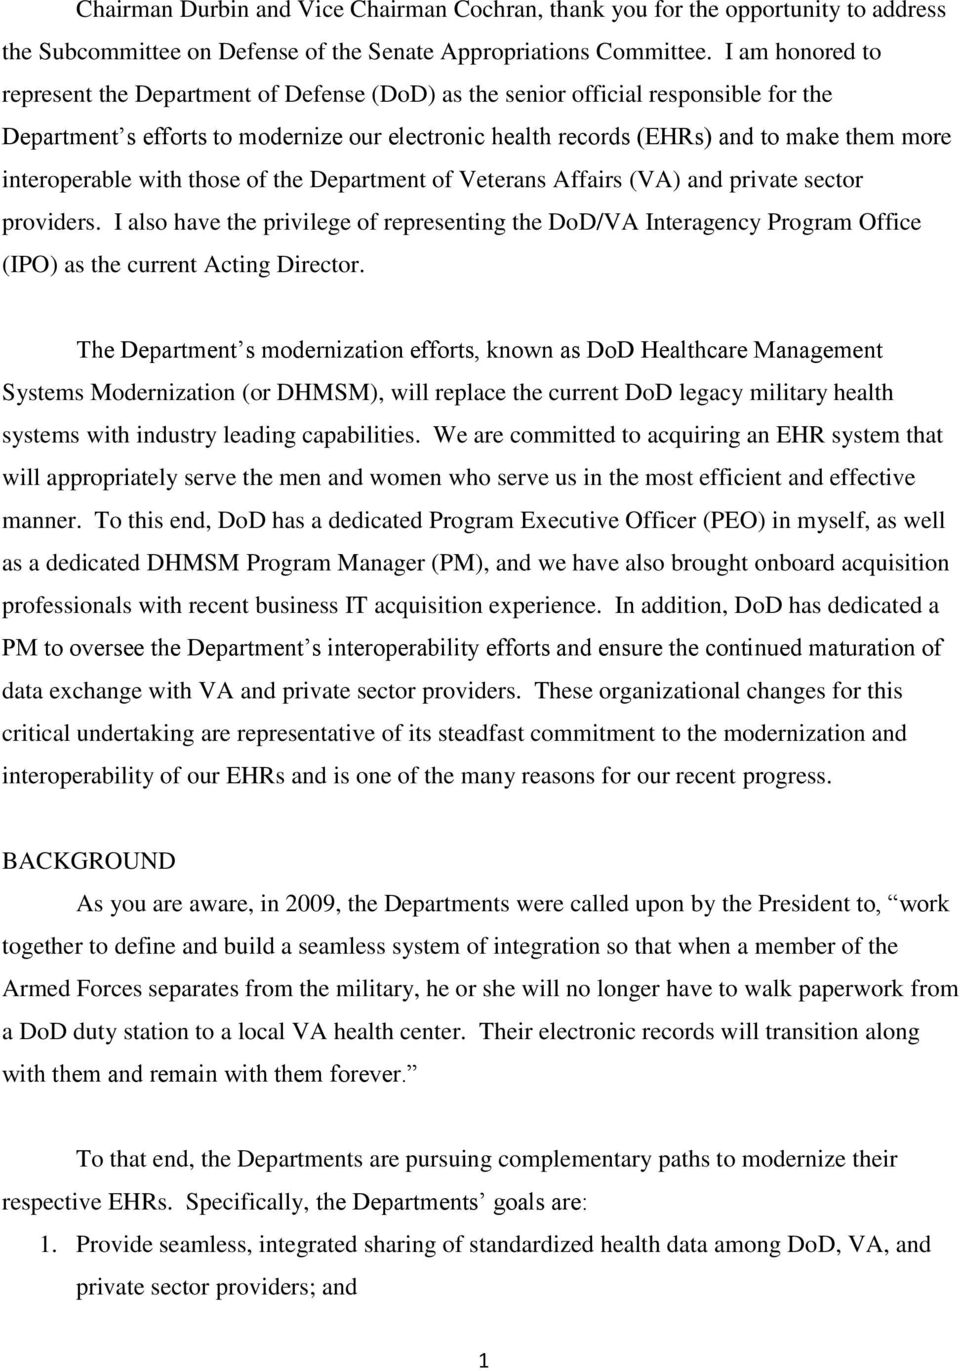 interoperable with those of the Department of Veterans Affairs (VA) and private sector providers.